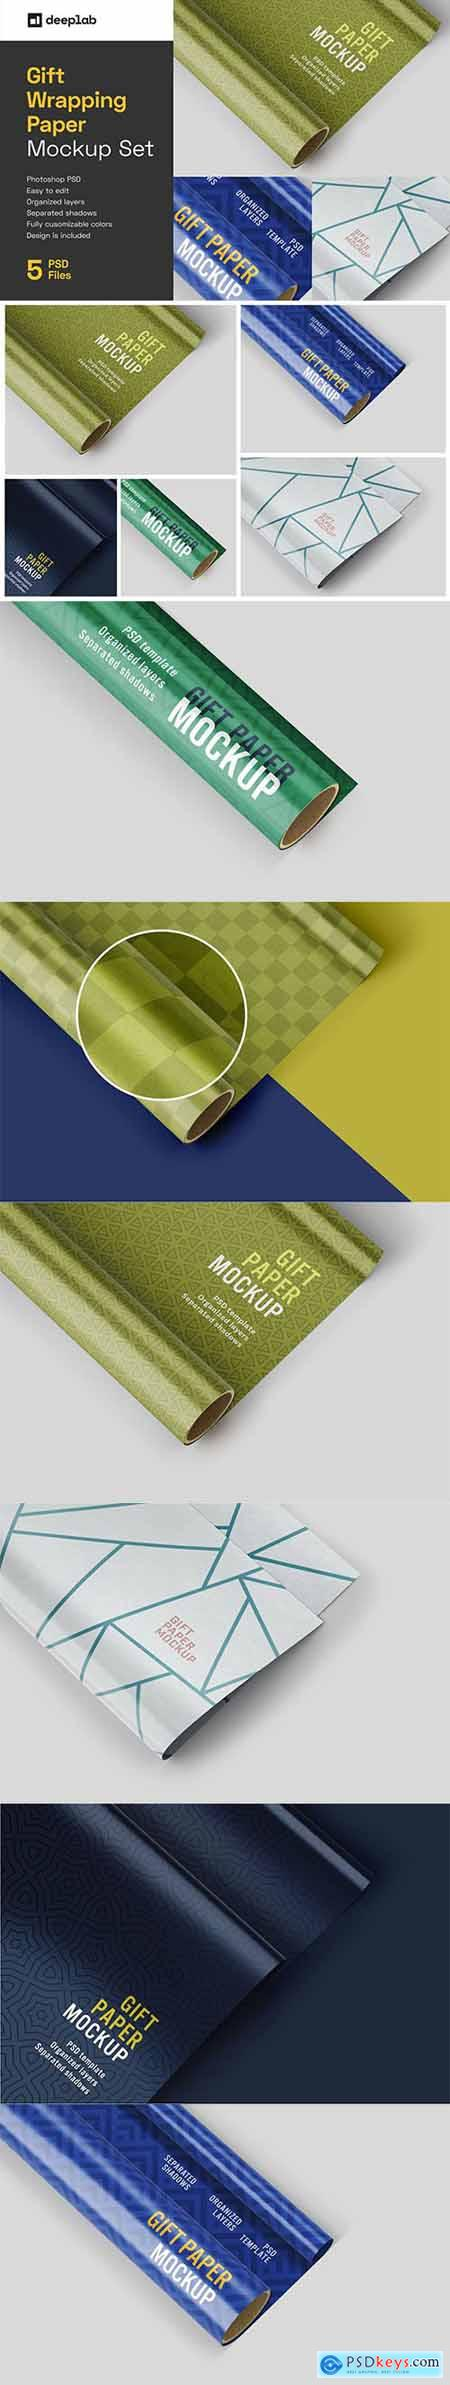 Gift Wrapping Paper Mockup Set 6091139